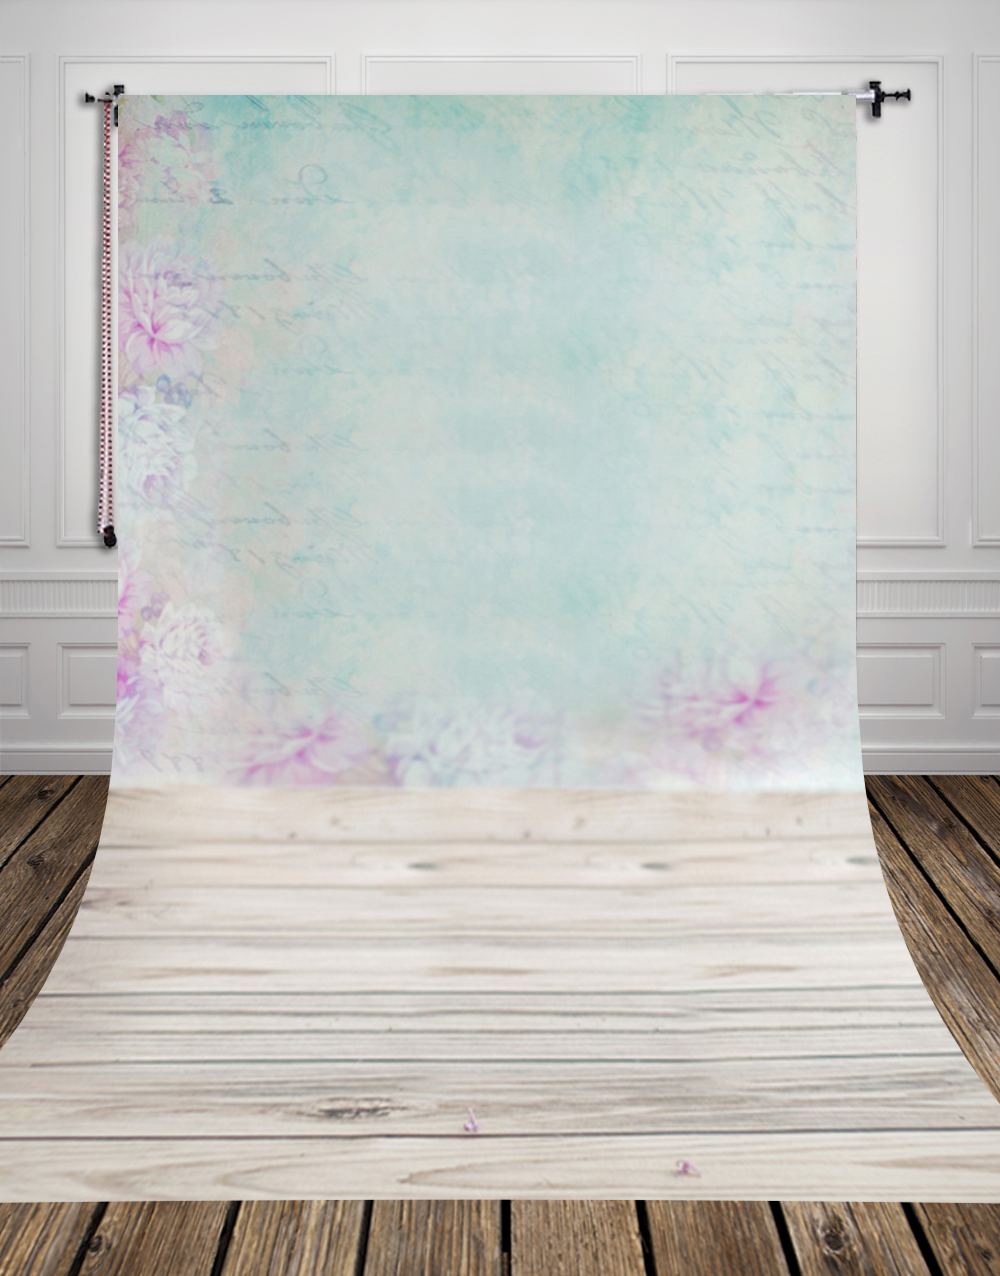 Pastel wallpaper and light wood floor printed photo studio backdrop newborn photography backdrops background D-9633 all sizes wood floor and white bricks photography backdrops background photo studio wallpaper decoration backdrop d 9638